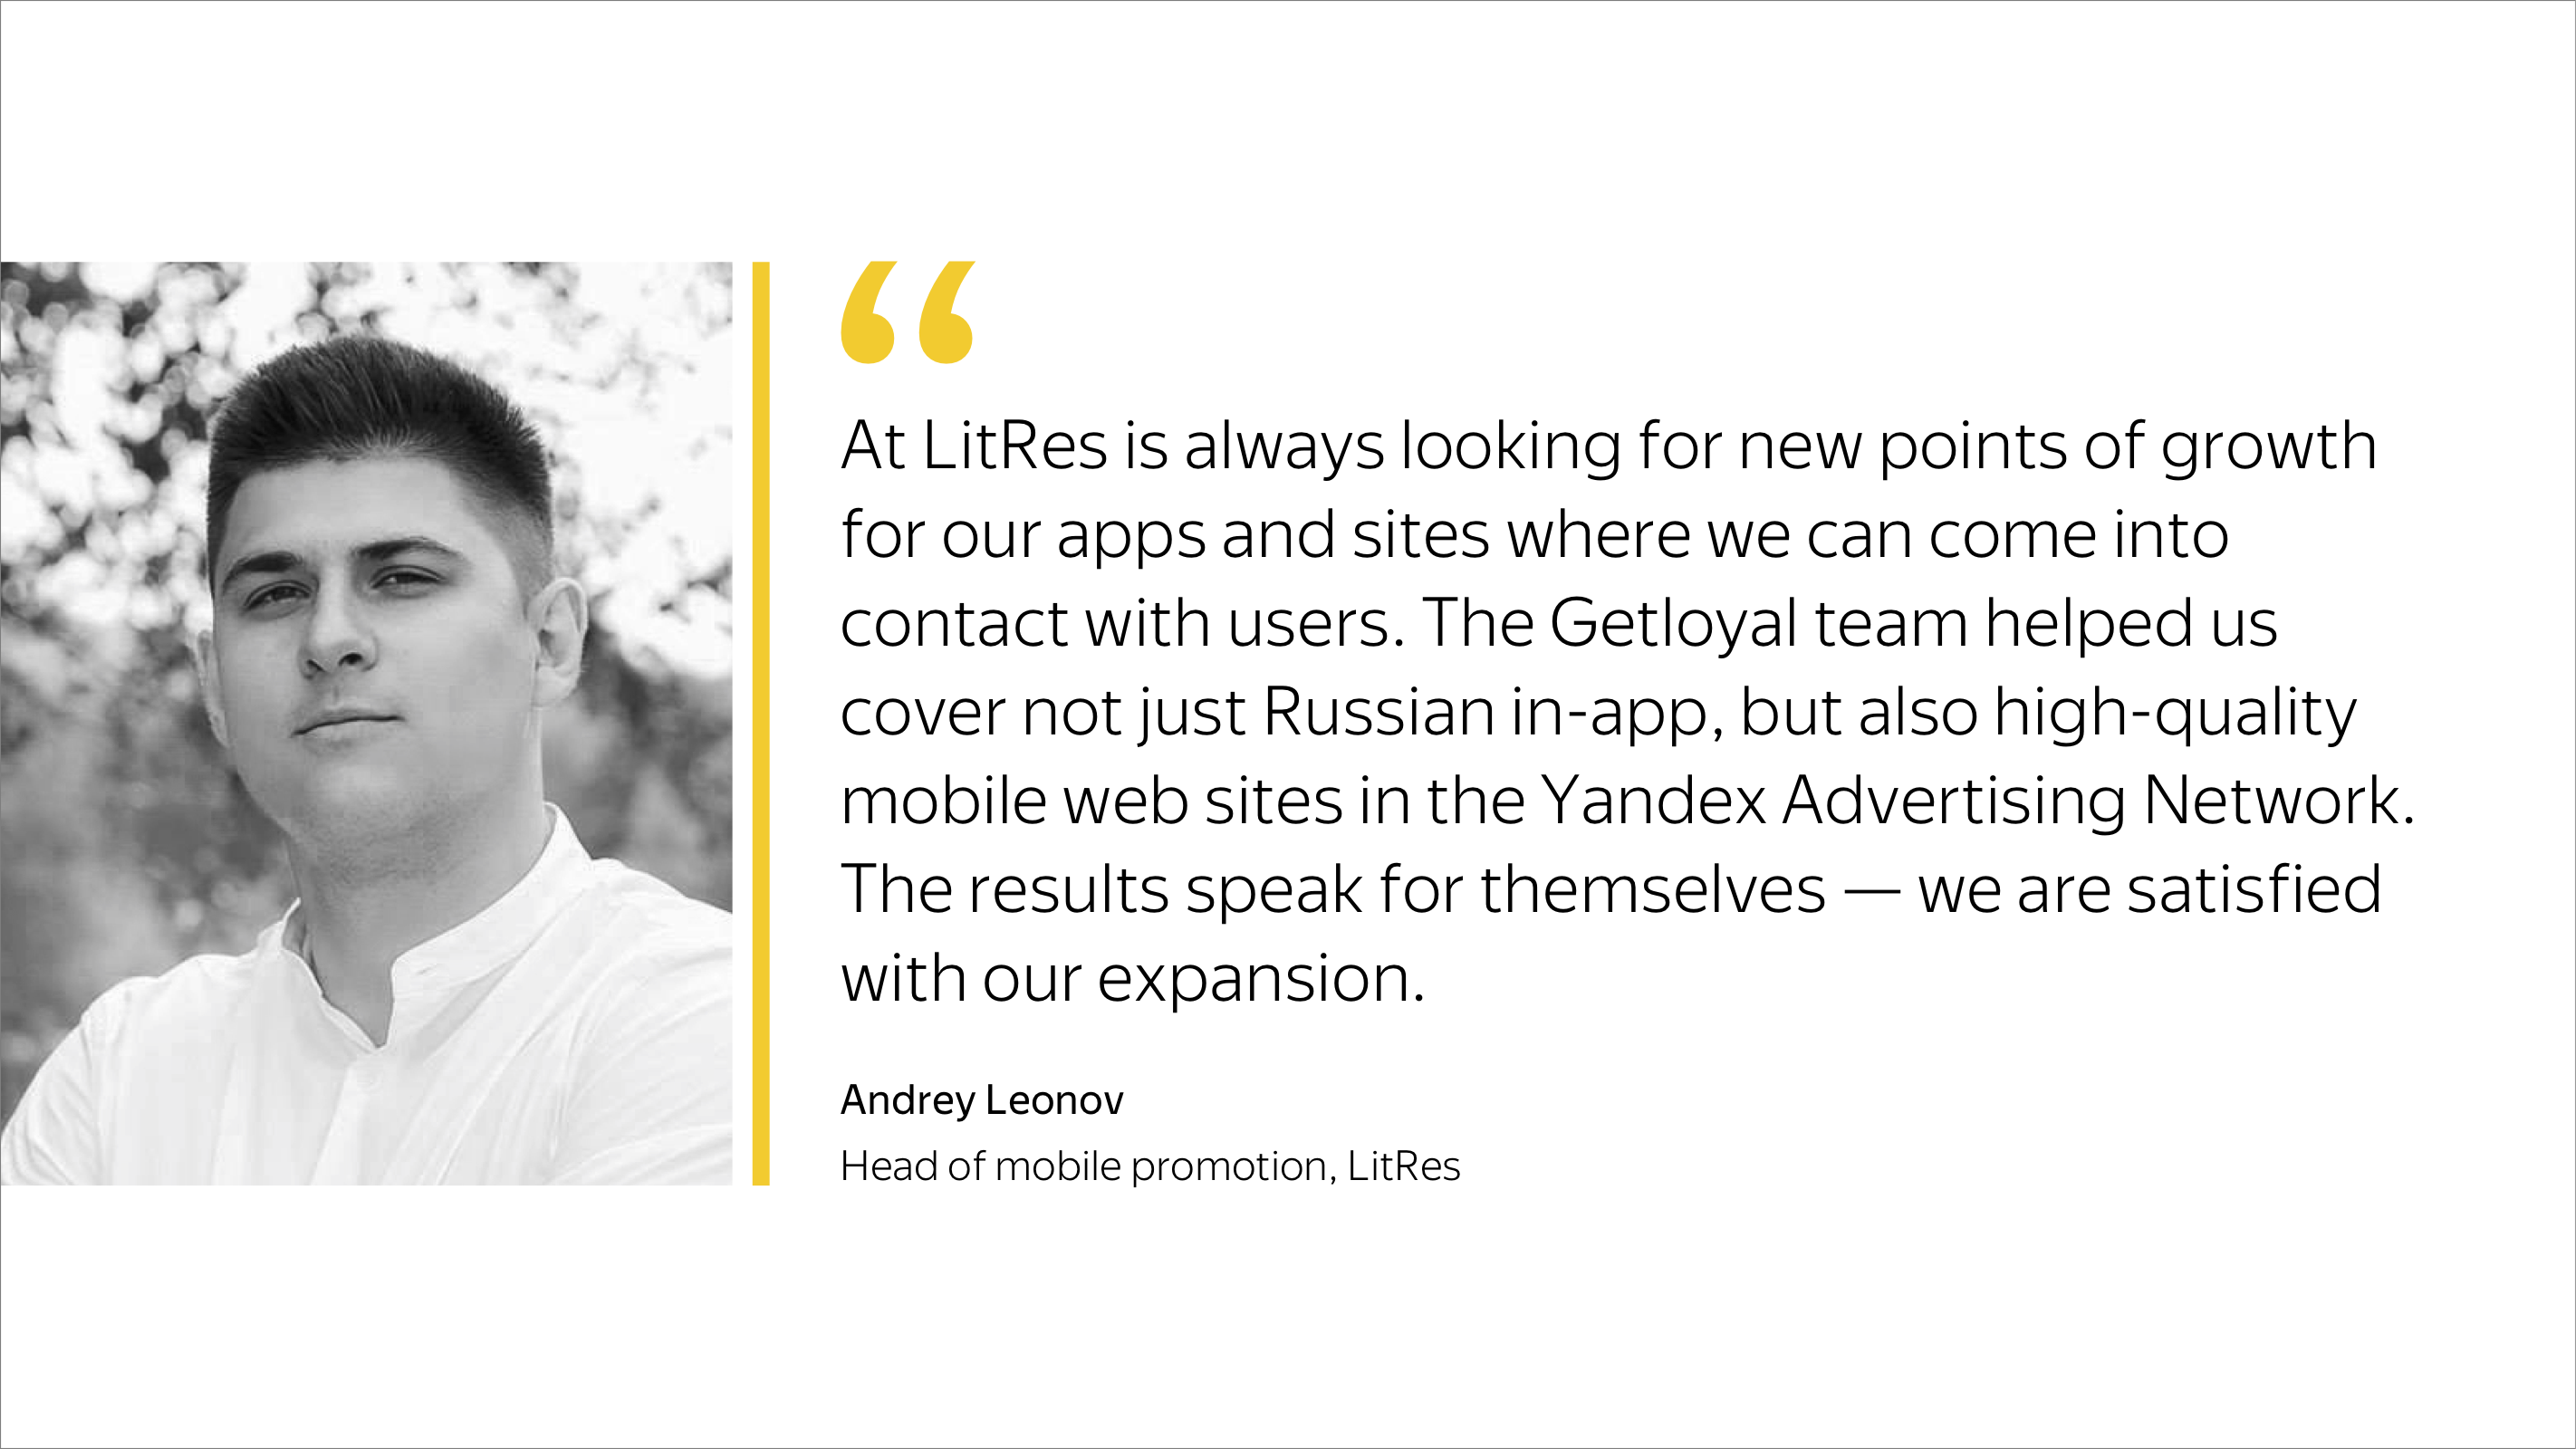 The Getloyal team helped us cover not just Russian in-app, but also high-quality mobile web sites in the Yandex Advertising Network.